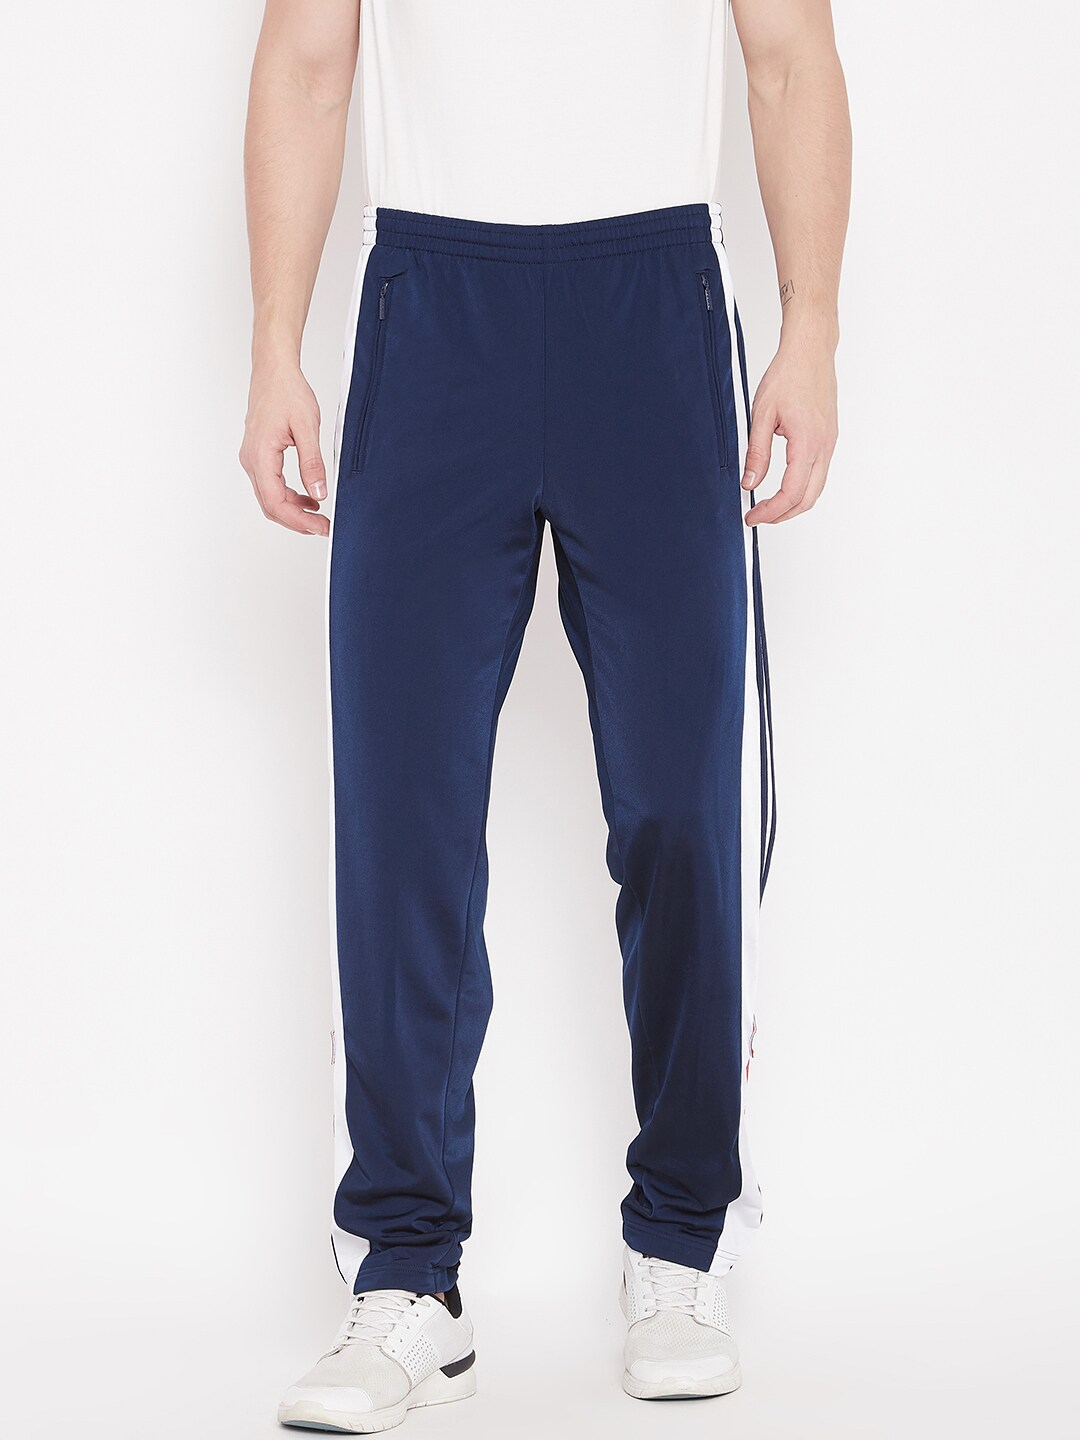 2bee9bd28020 Adidas Originals Track Pants - Buy Adidas Originals Track Pants Online